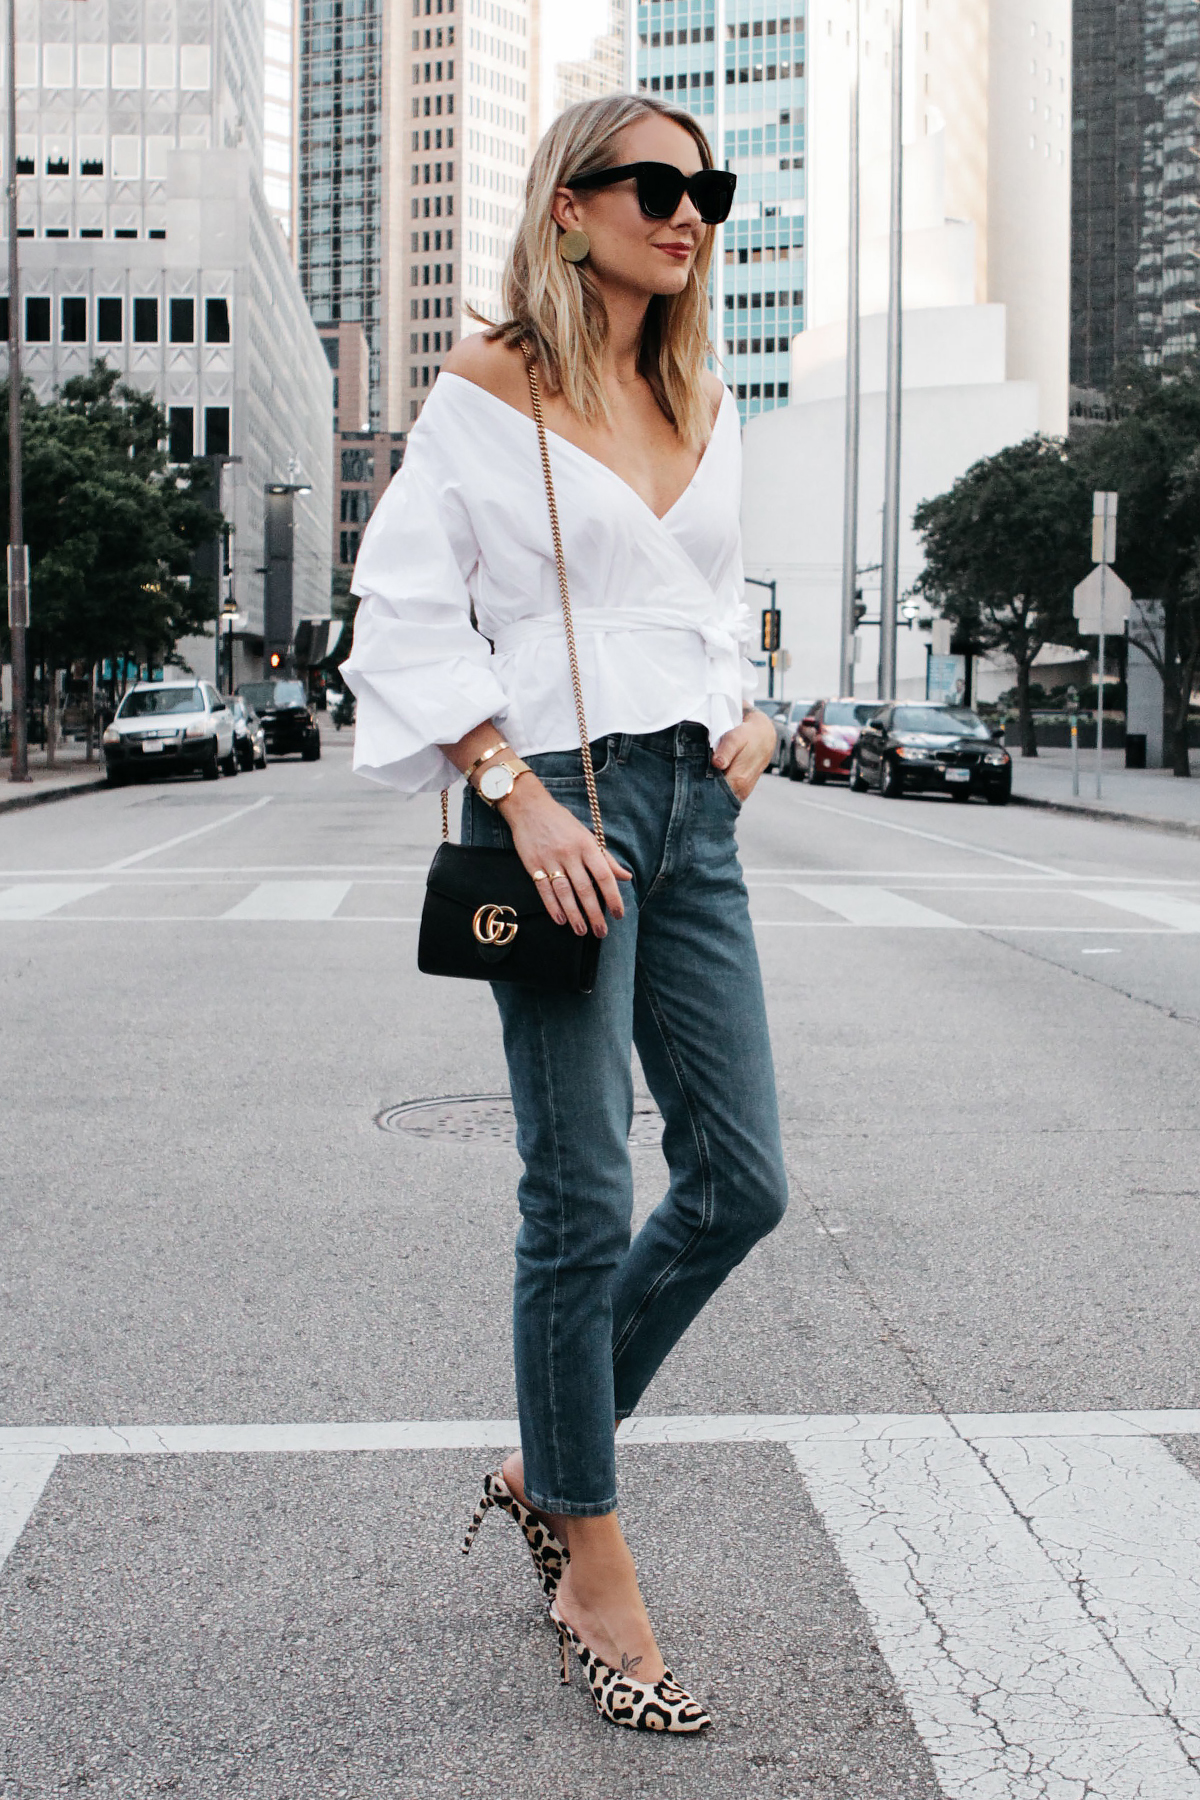 Blonde Woman Wearing Club Monaco White Ruffle Sleeve Wrap Top Gucci Marmont Handbag Everlane Boyfriend Jeans Club Monaco Leopard Heels Fashion Jackson Dallas Blogger Fashion Blogger Street Style